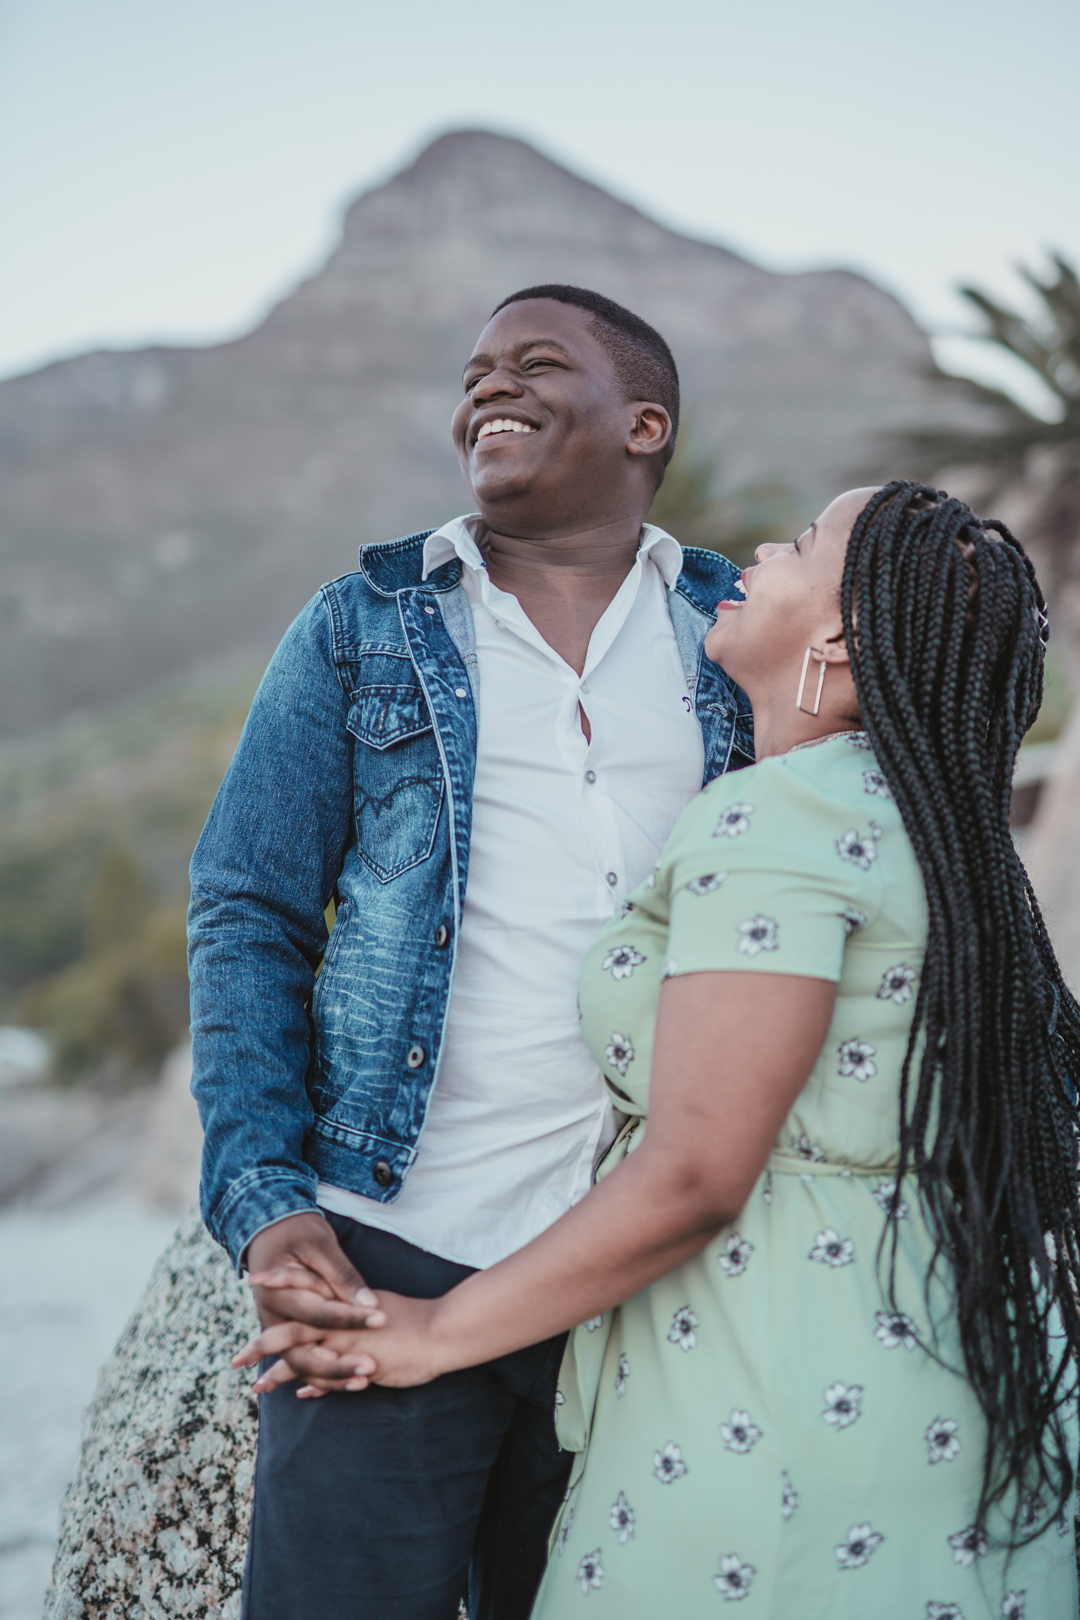 Couples Photos - Cape Town Beach session by Cape Image Co. _Small-file-19.jpg